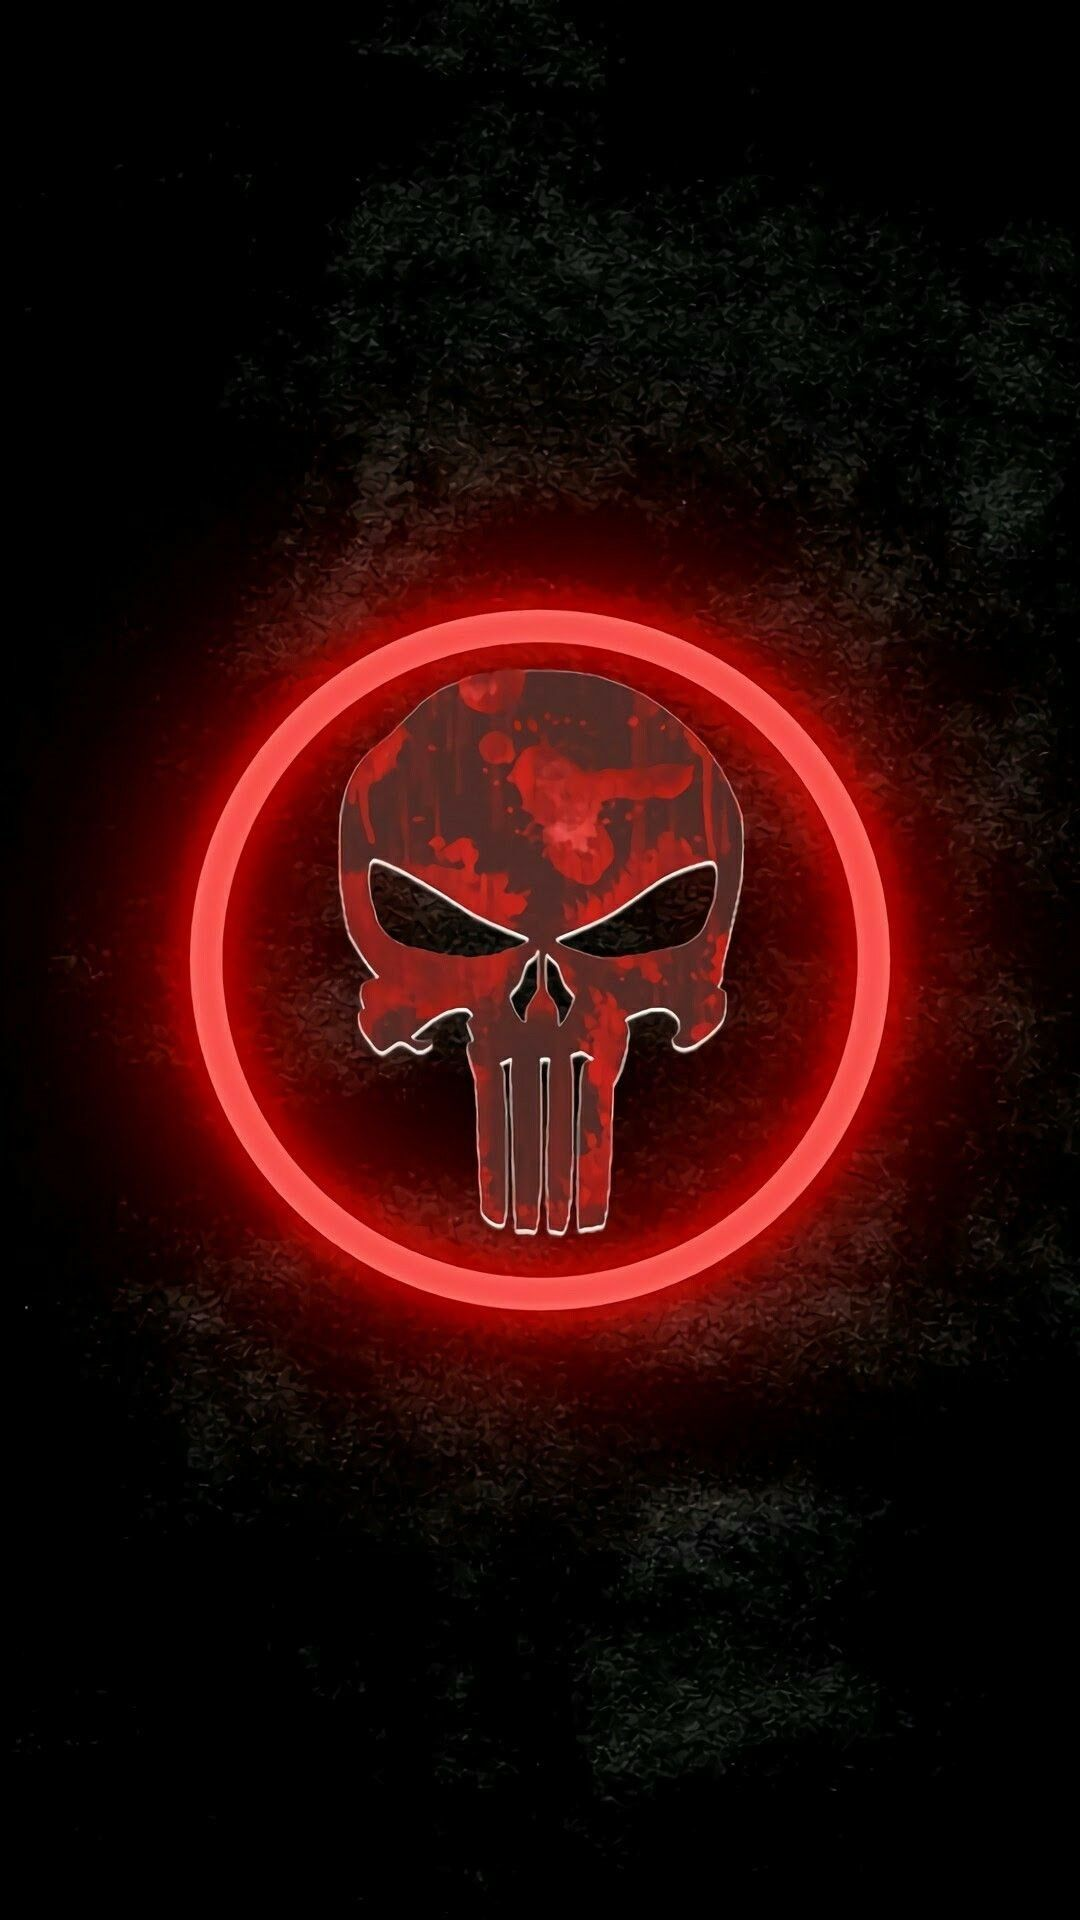 1080x1920 70+ Punisher Phone Wallpapers on WallpaperPlay